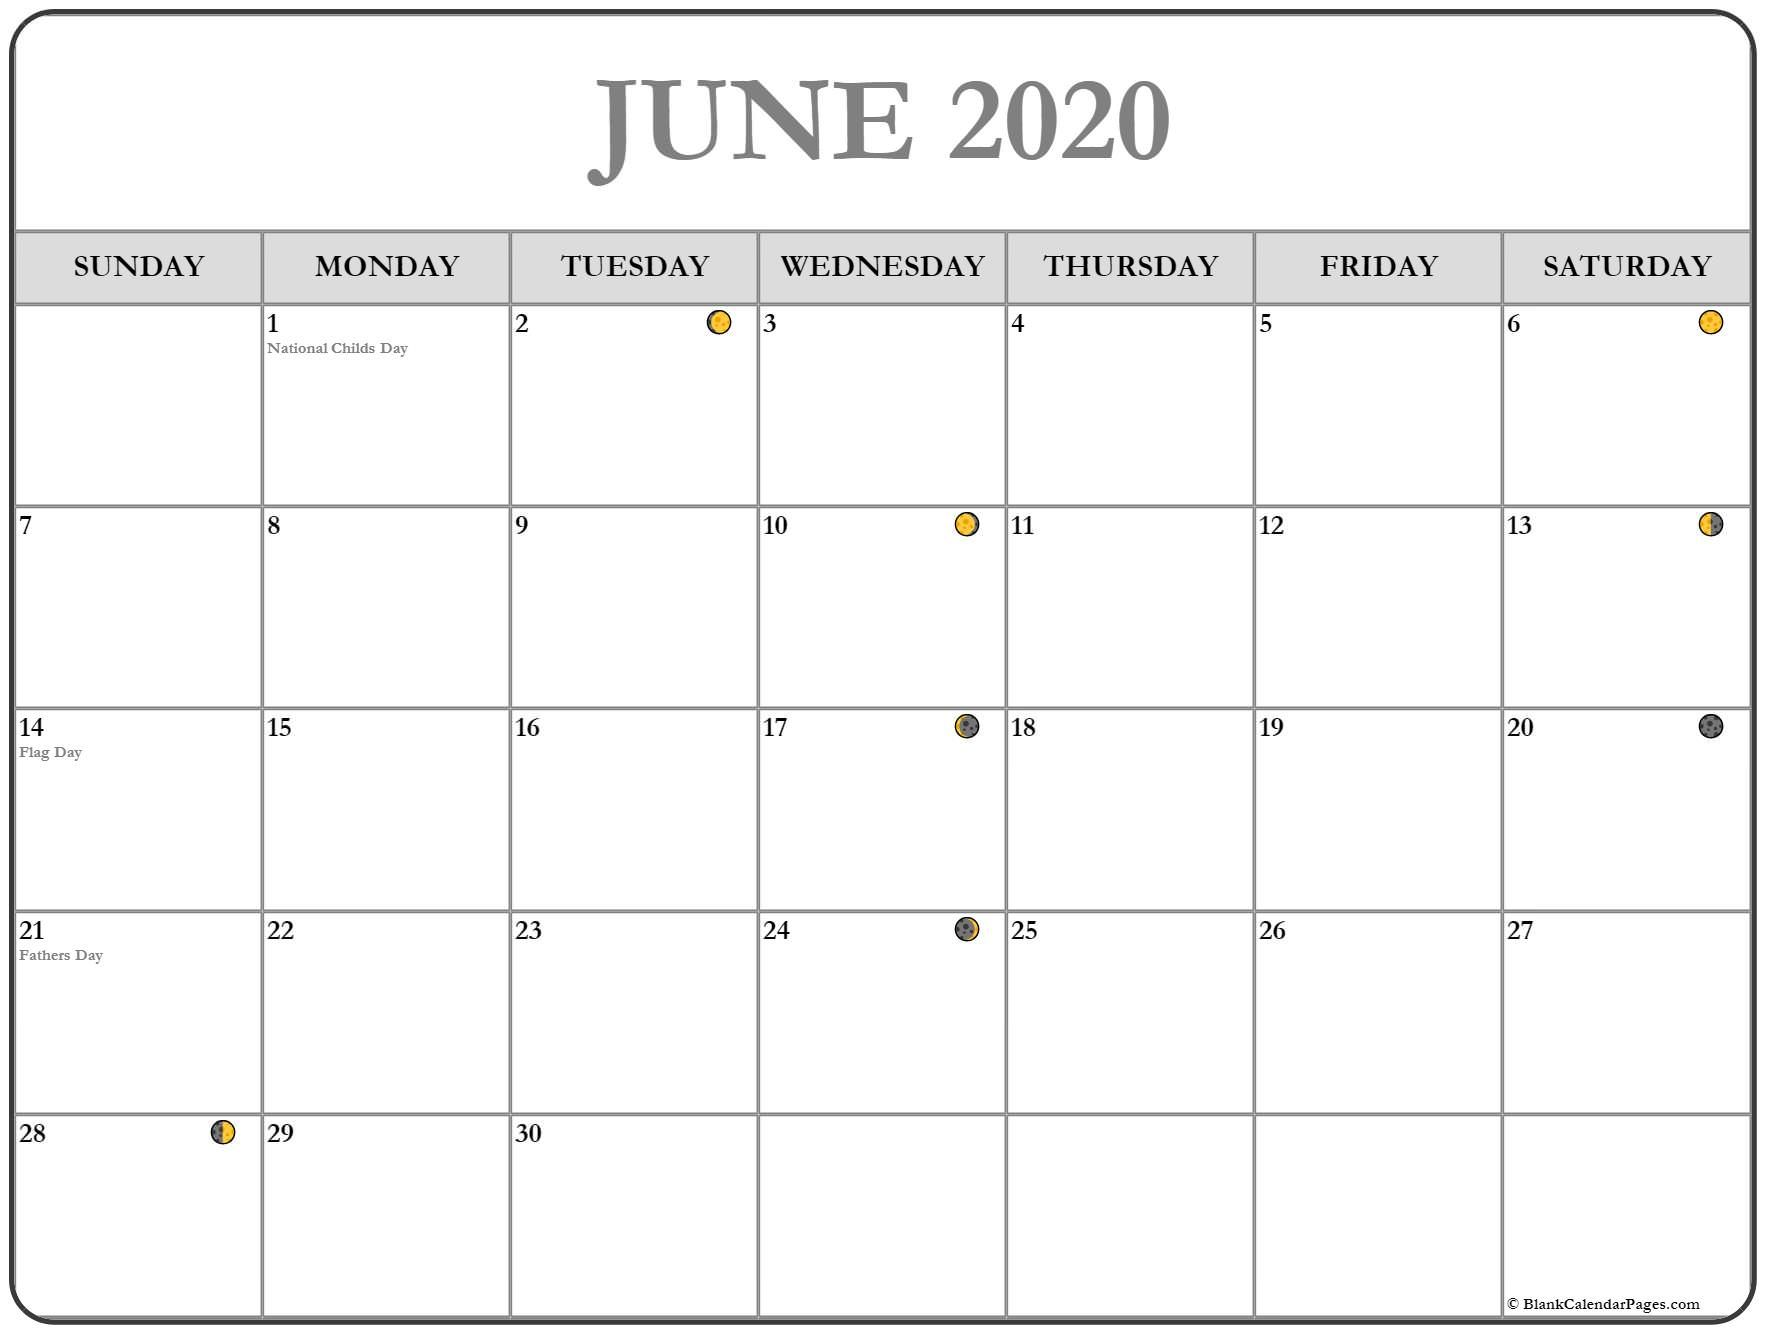 June Calendar Printable Template With Holidays With